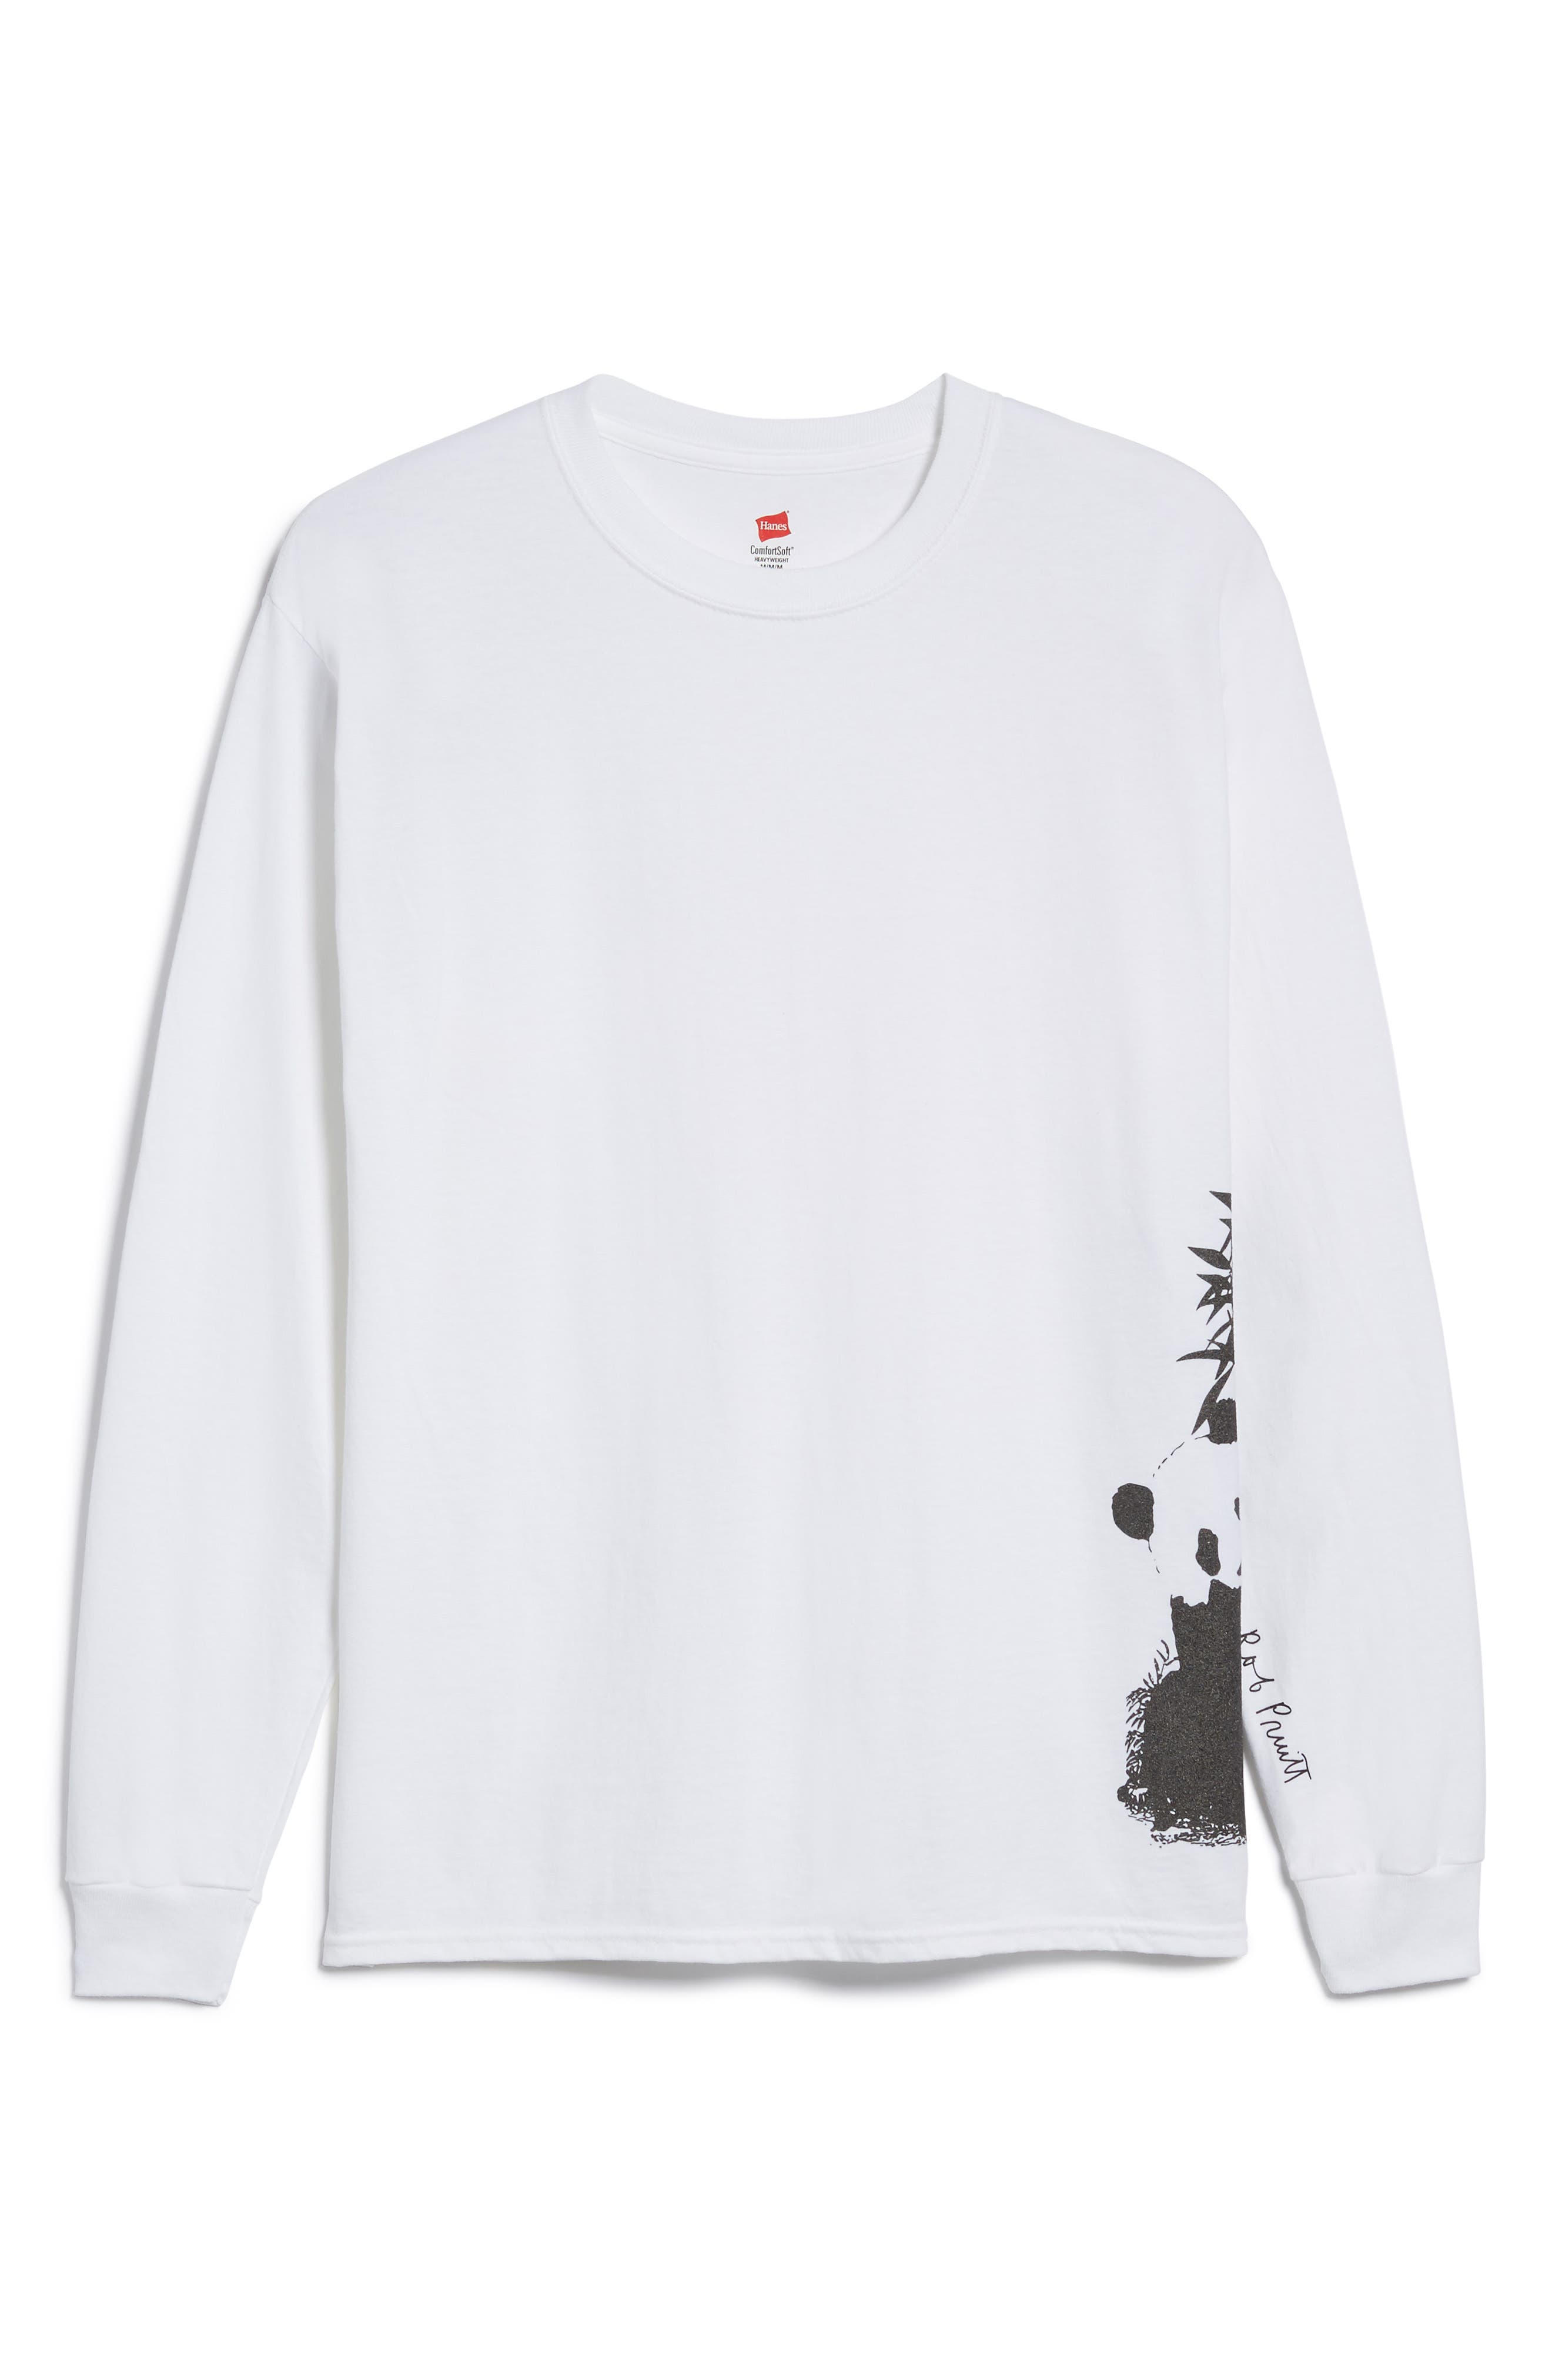 Rob Pruitt x RxArt Graphic Long Sleeve T-Shirt